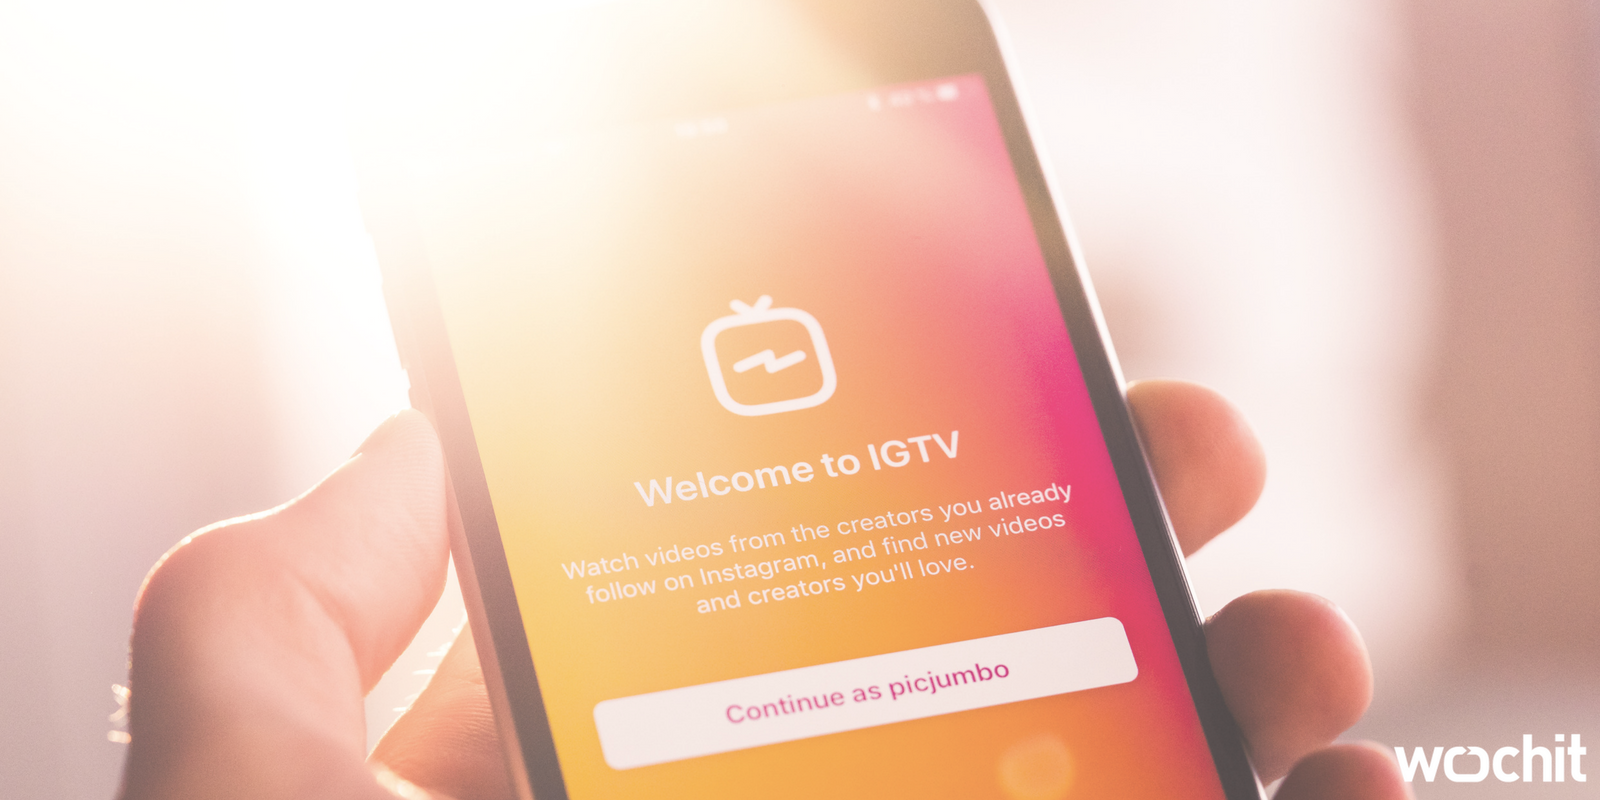 What's with IGTV and how do I get started?